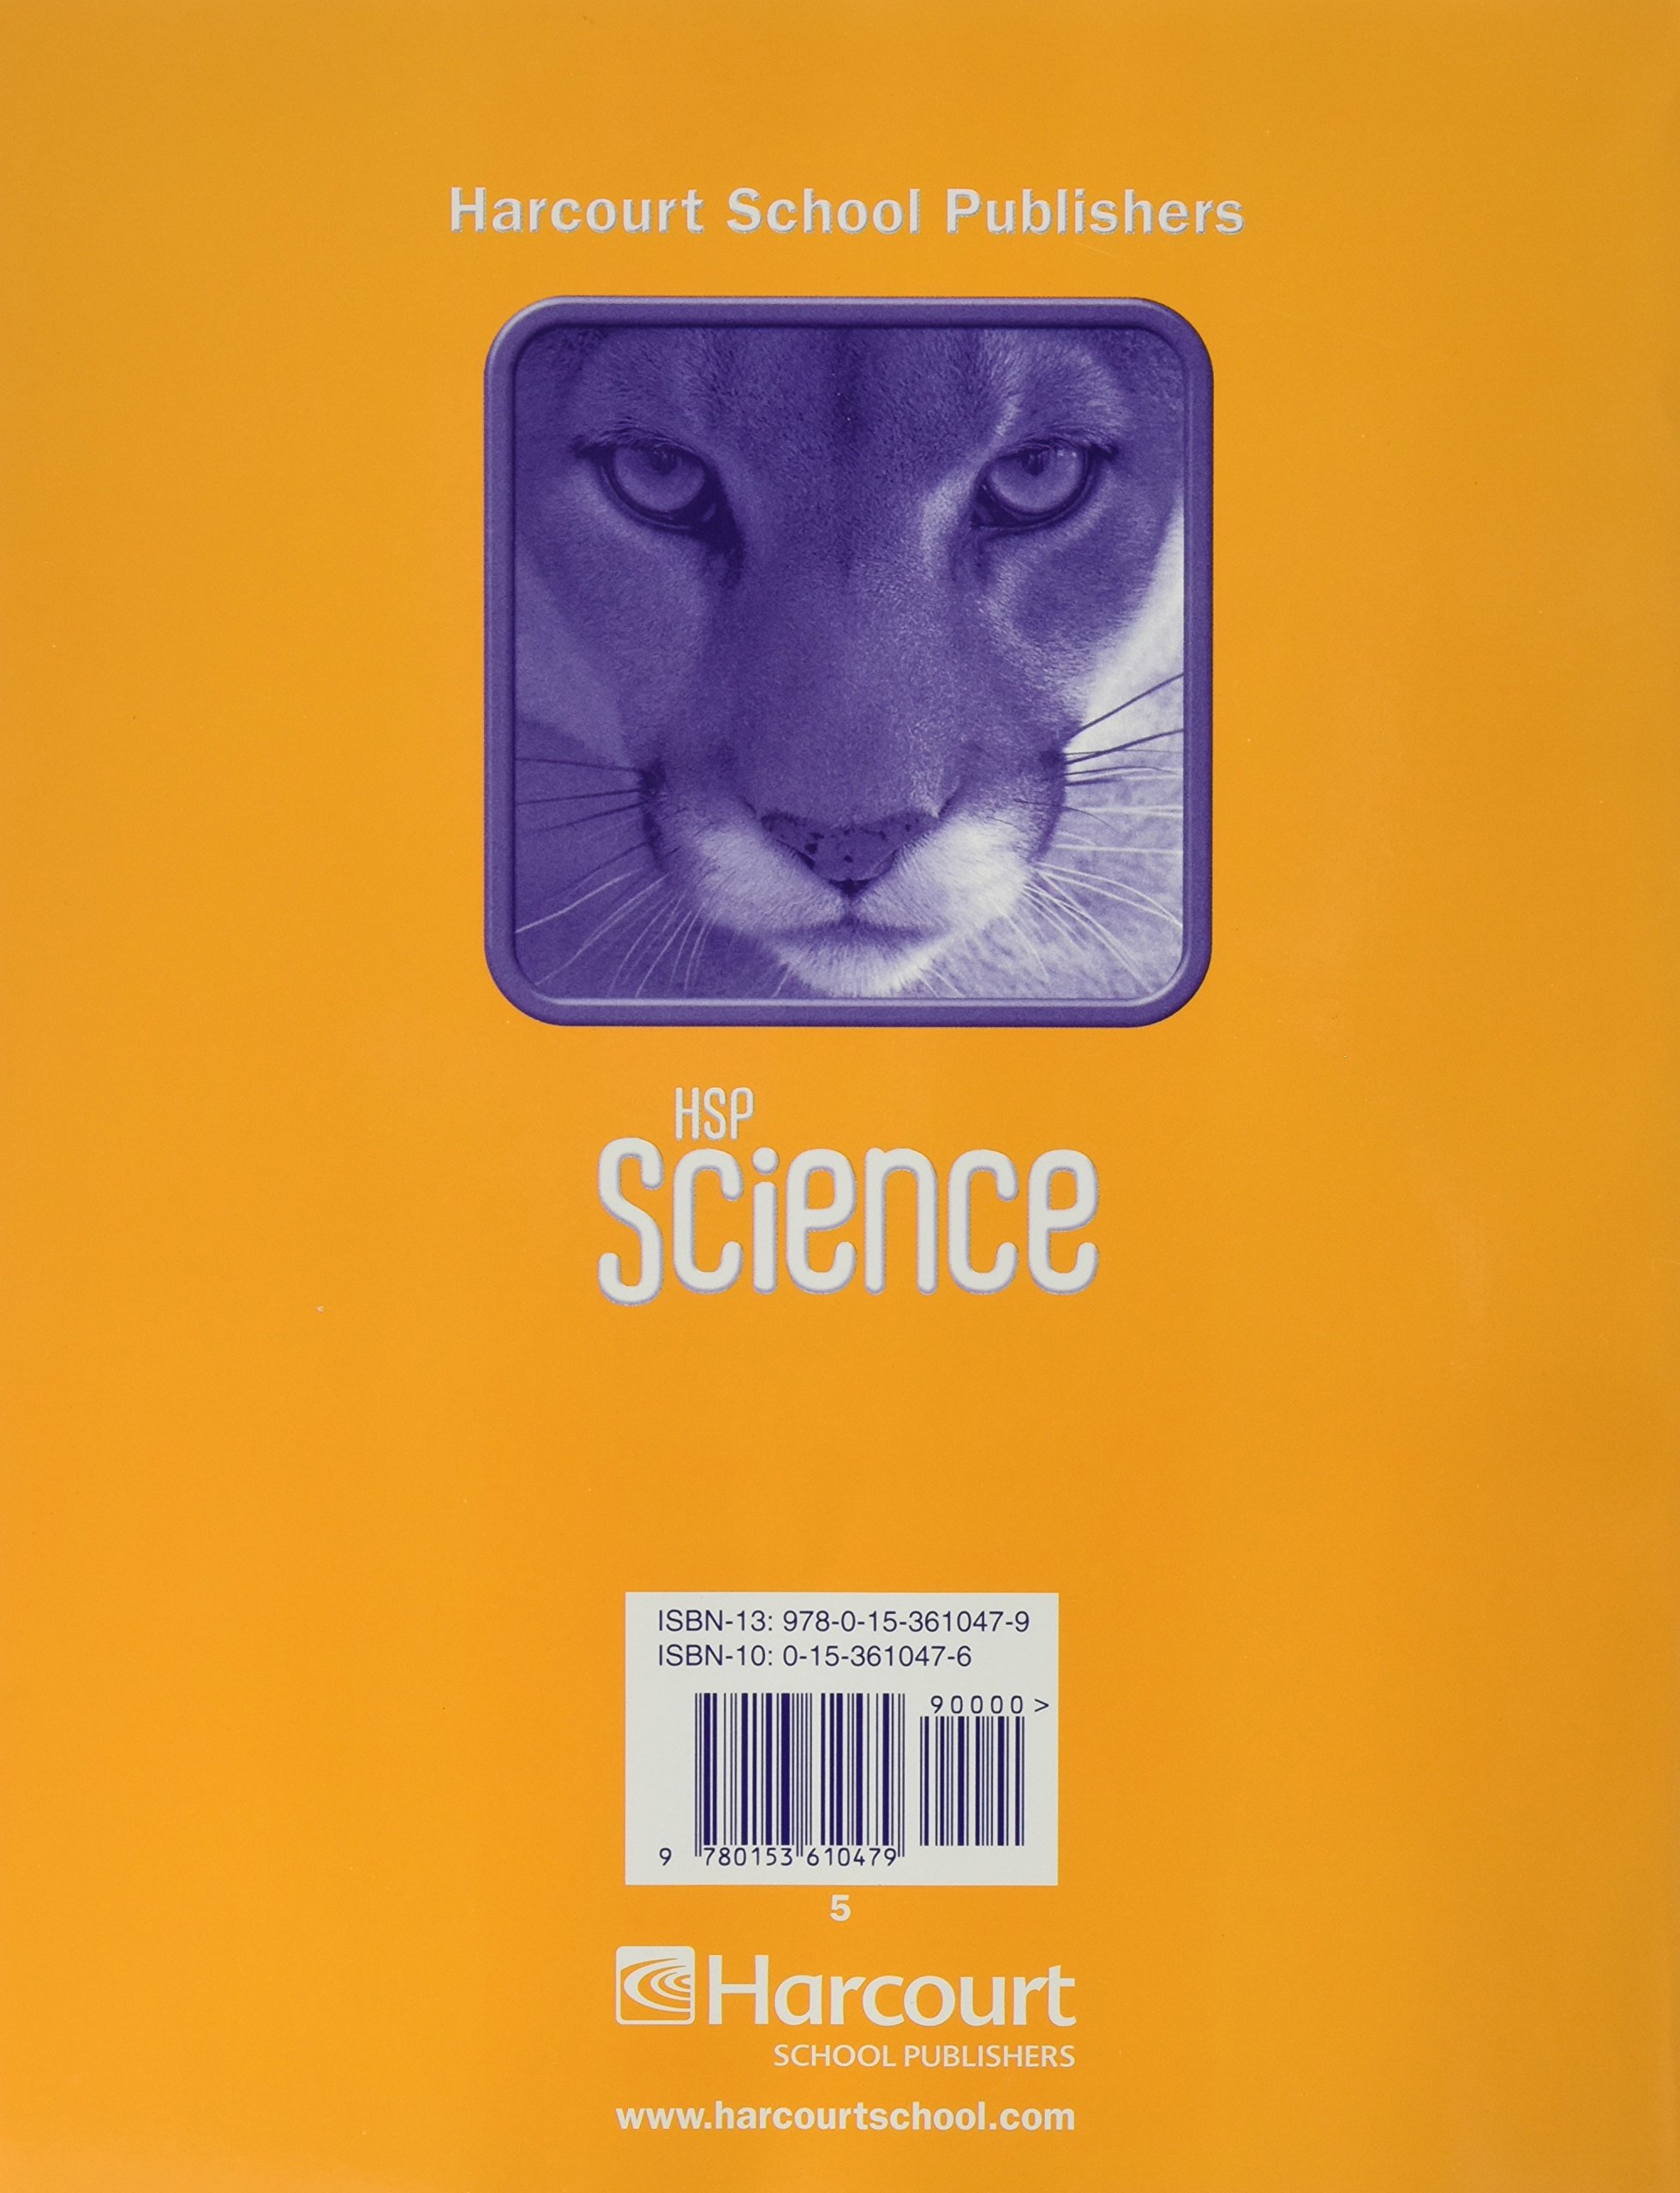 HSP Science © 2009: Assessment Guide Grade 5: Harcourt: 9780153610479:  Amazon.com: Books